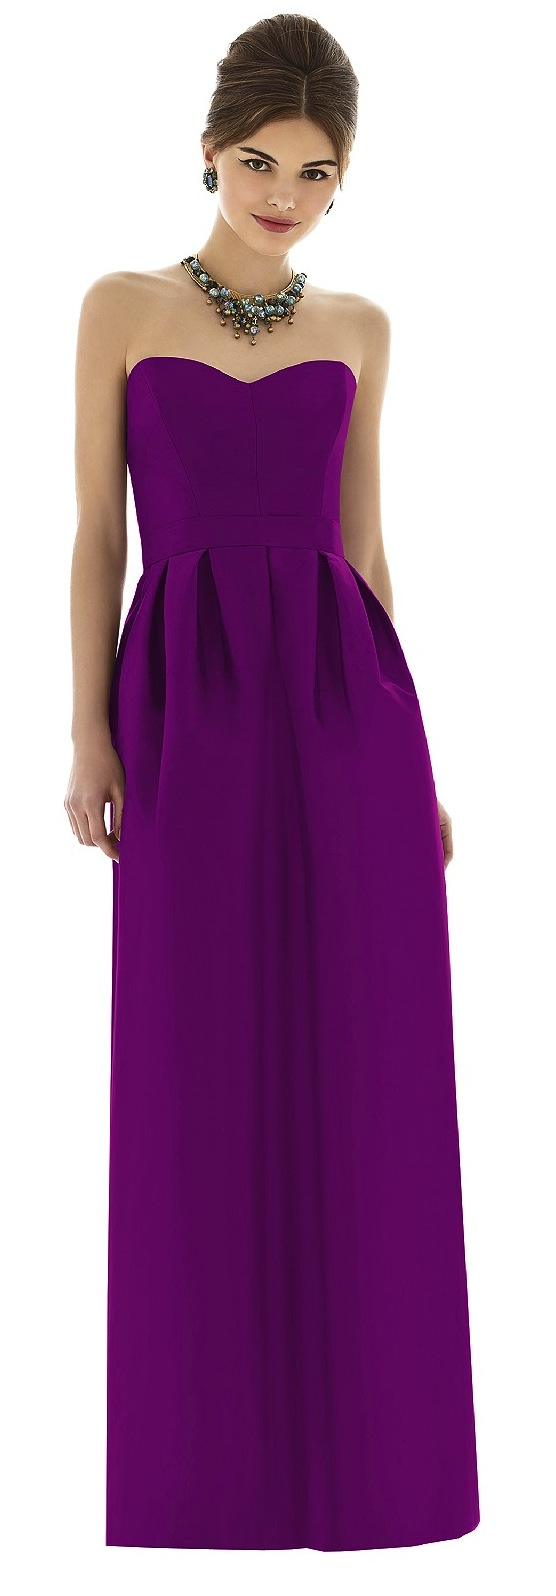 Alfred sung bridesmaid dresses prices images braidsmaid dress alfred sung bridesmaid dressesalfred sung dresses d 619the dessy alfred sung bridesmaid dresses alfred sung d619 ombrellifo Choice Image